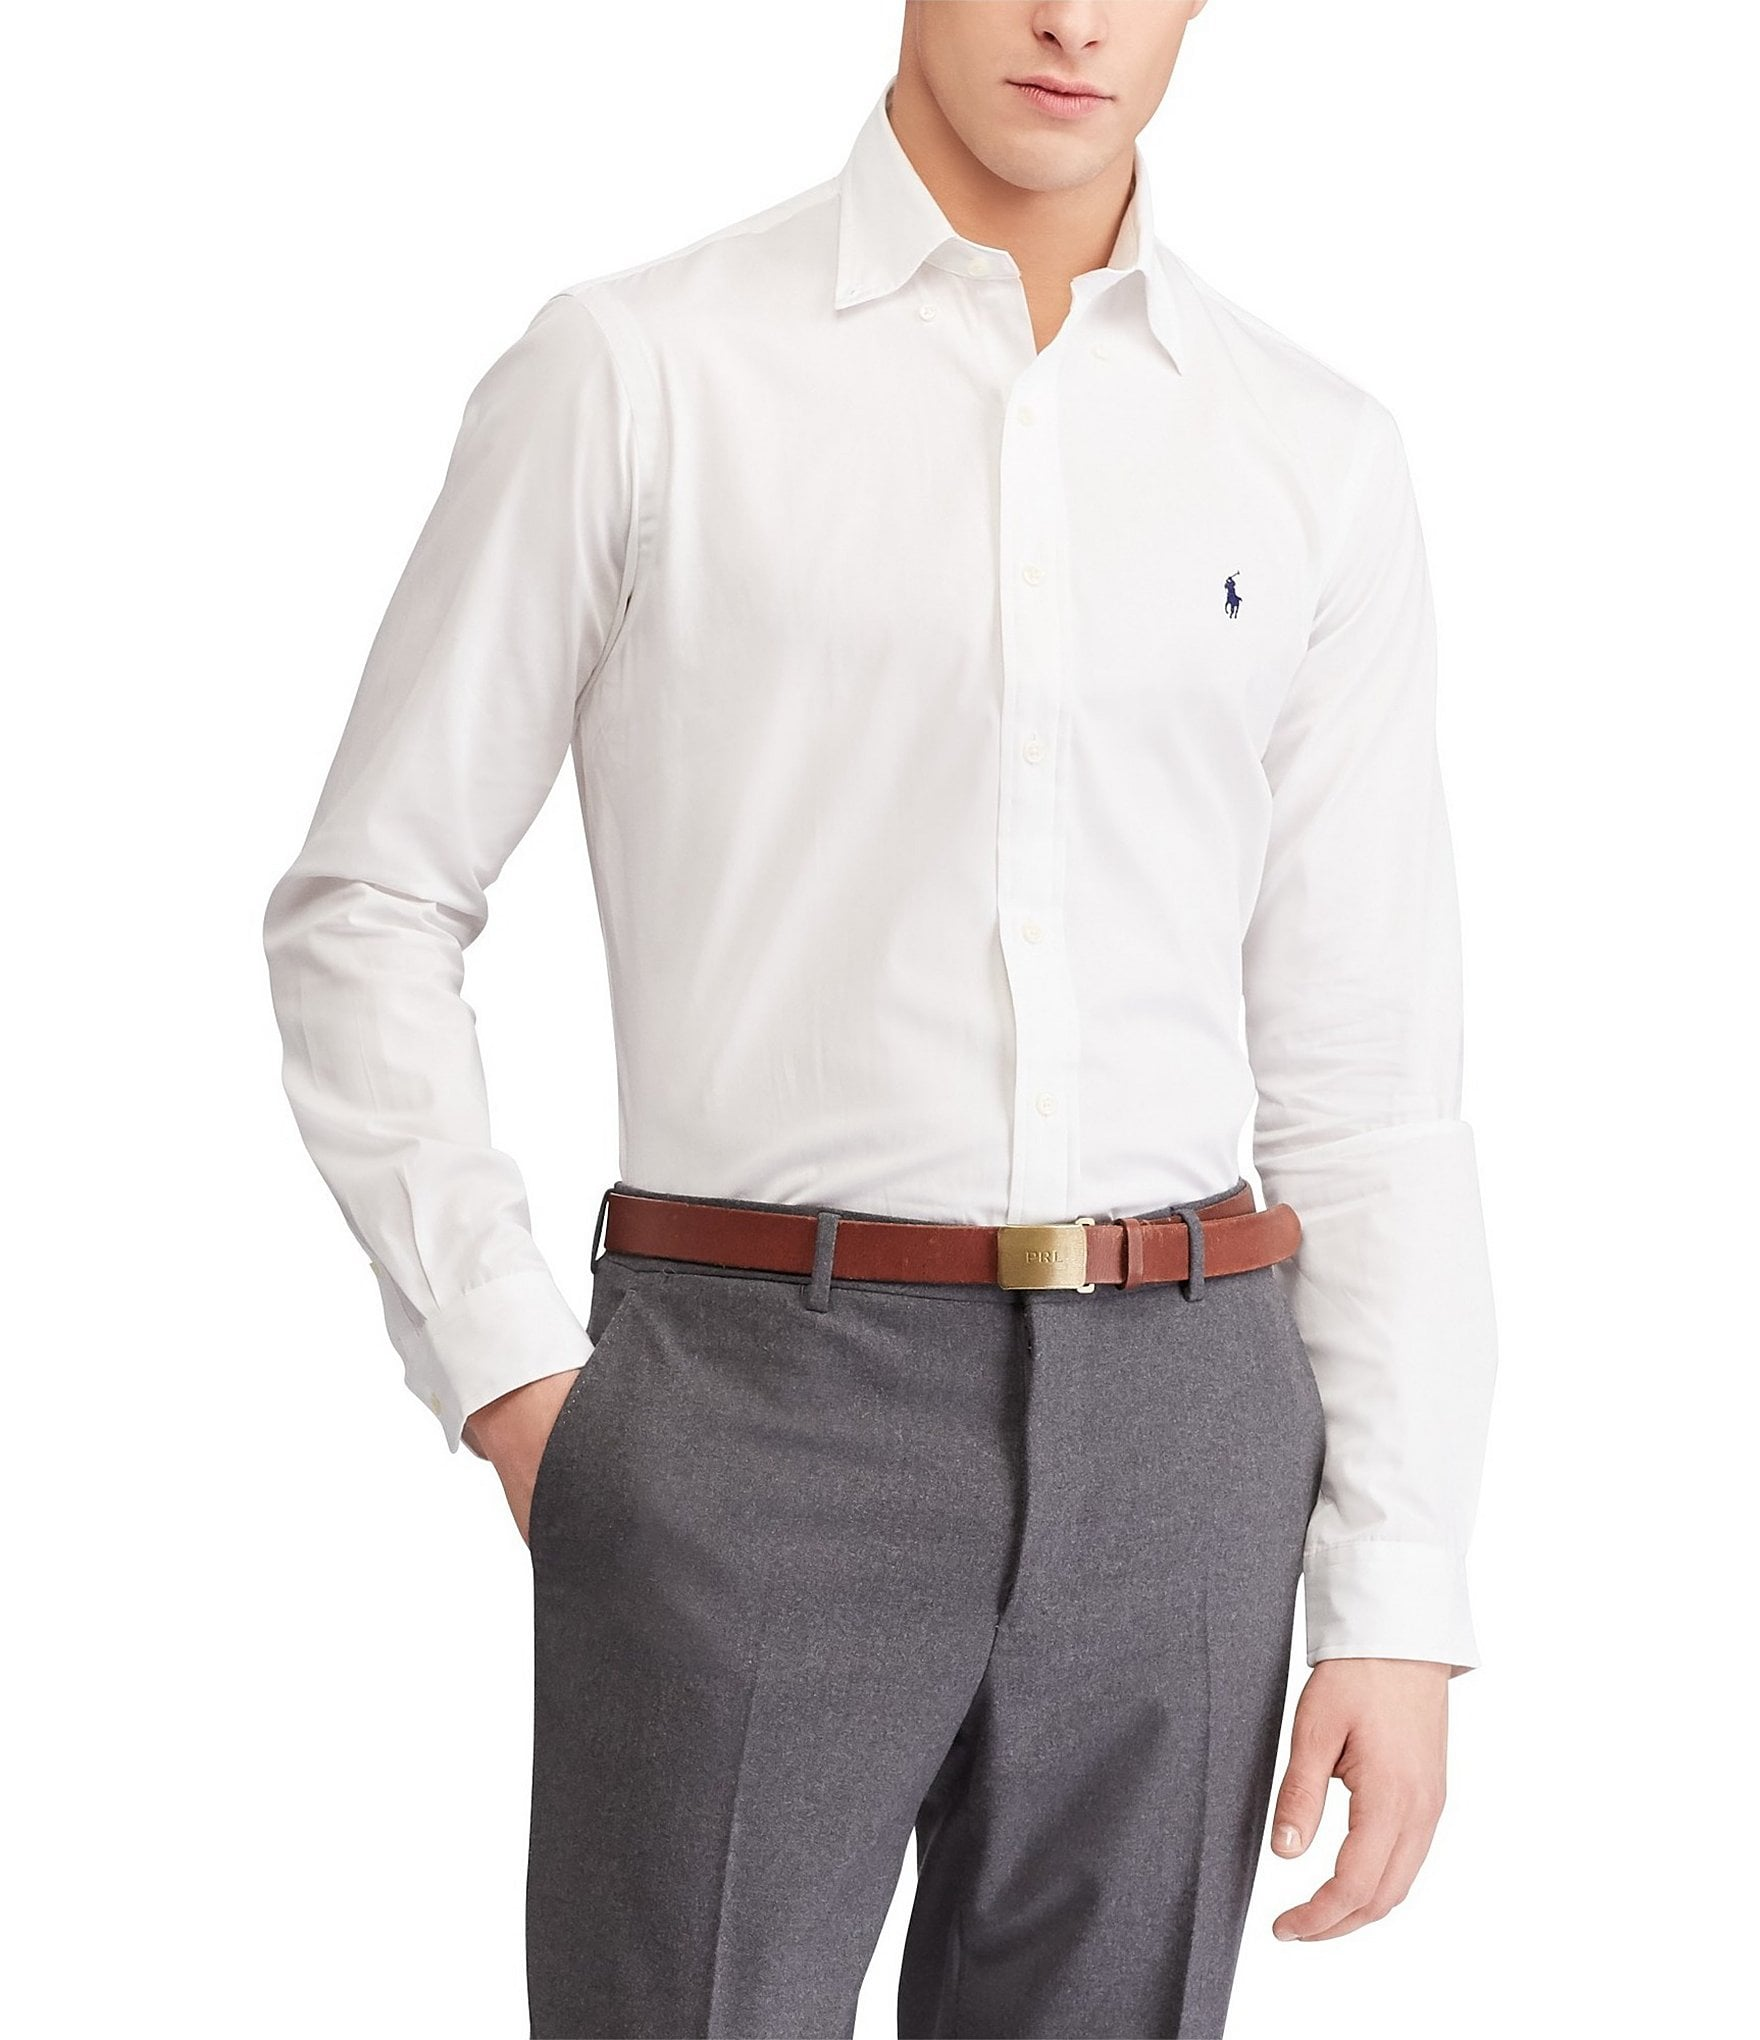 Mens Long Sleeved Stretch Poplin Shirt by Duck and Cover /'Raginald/'